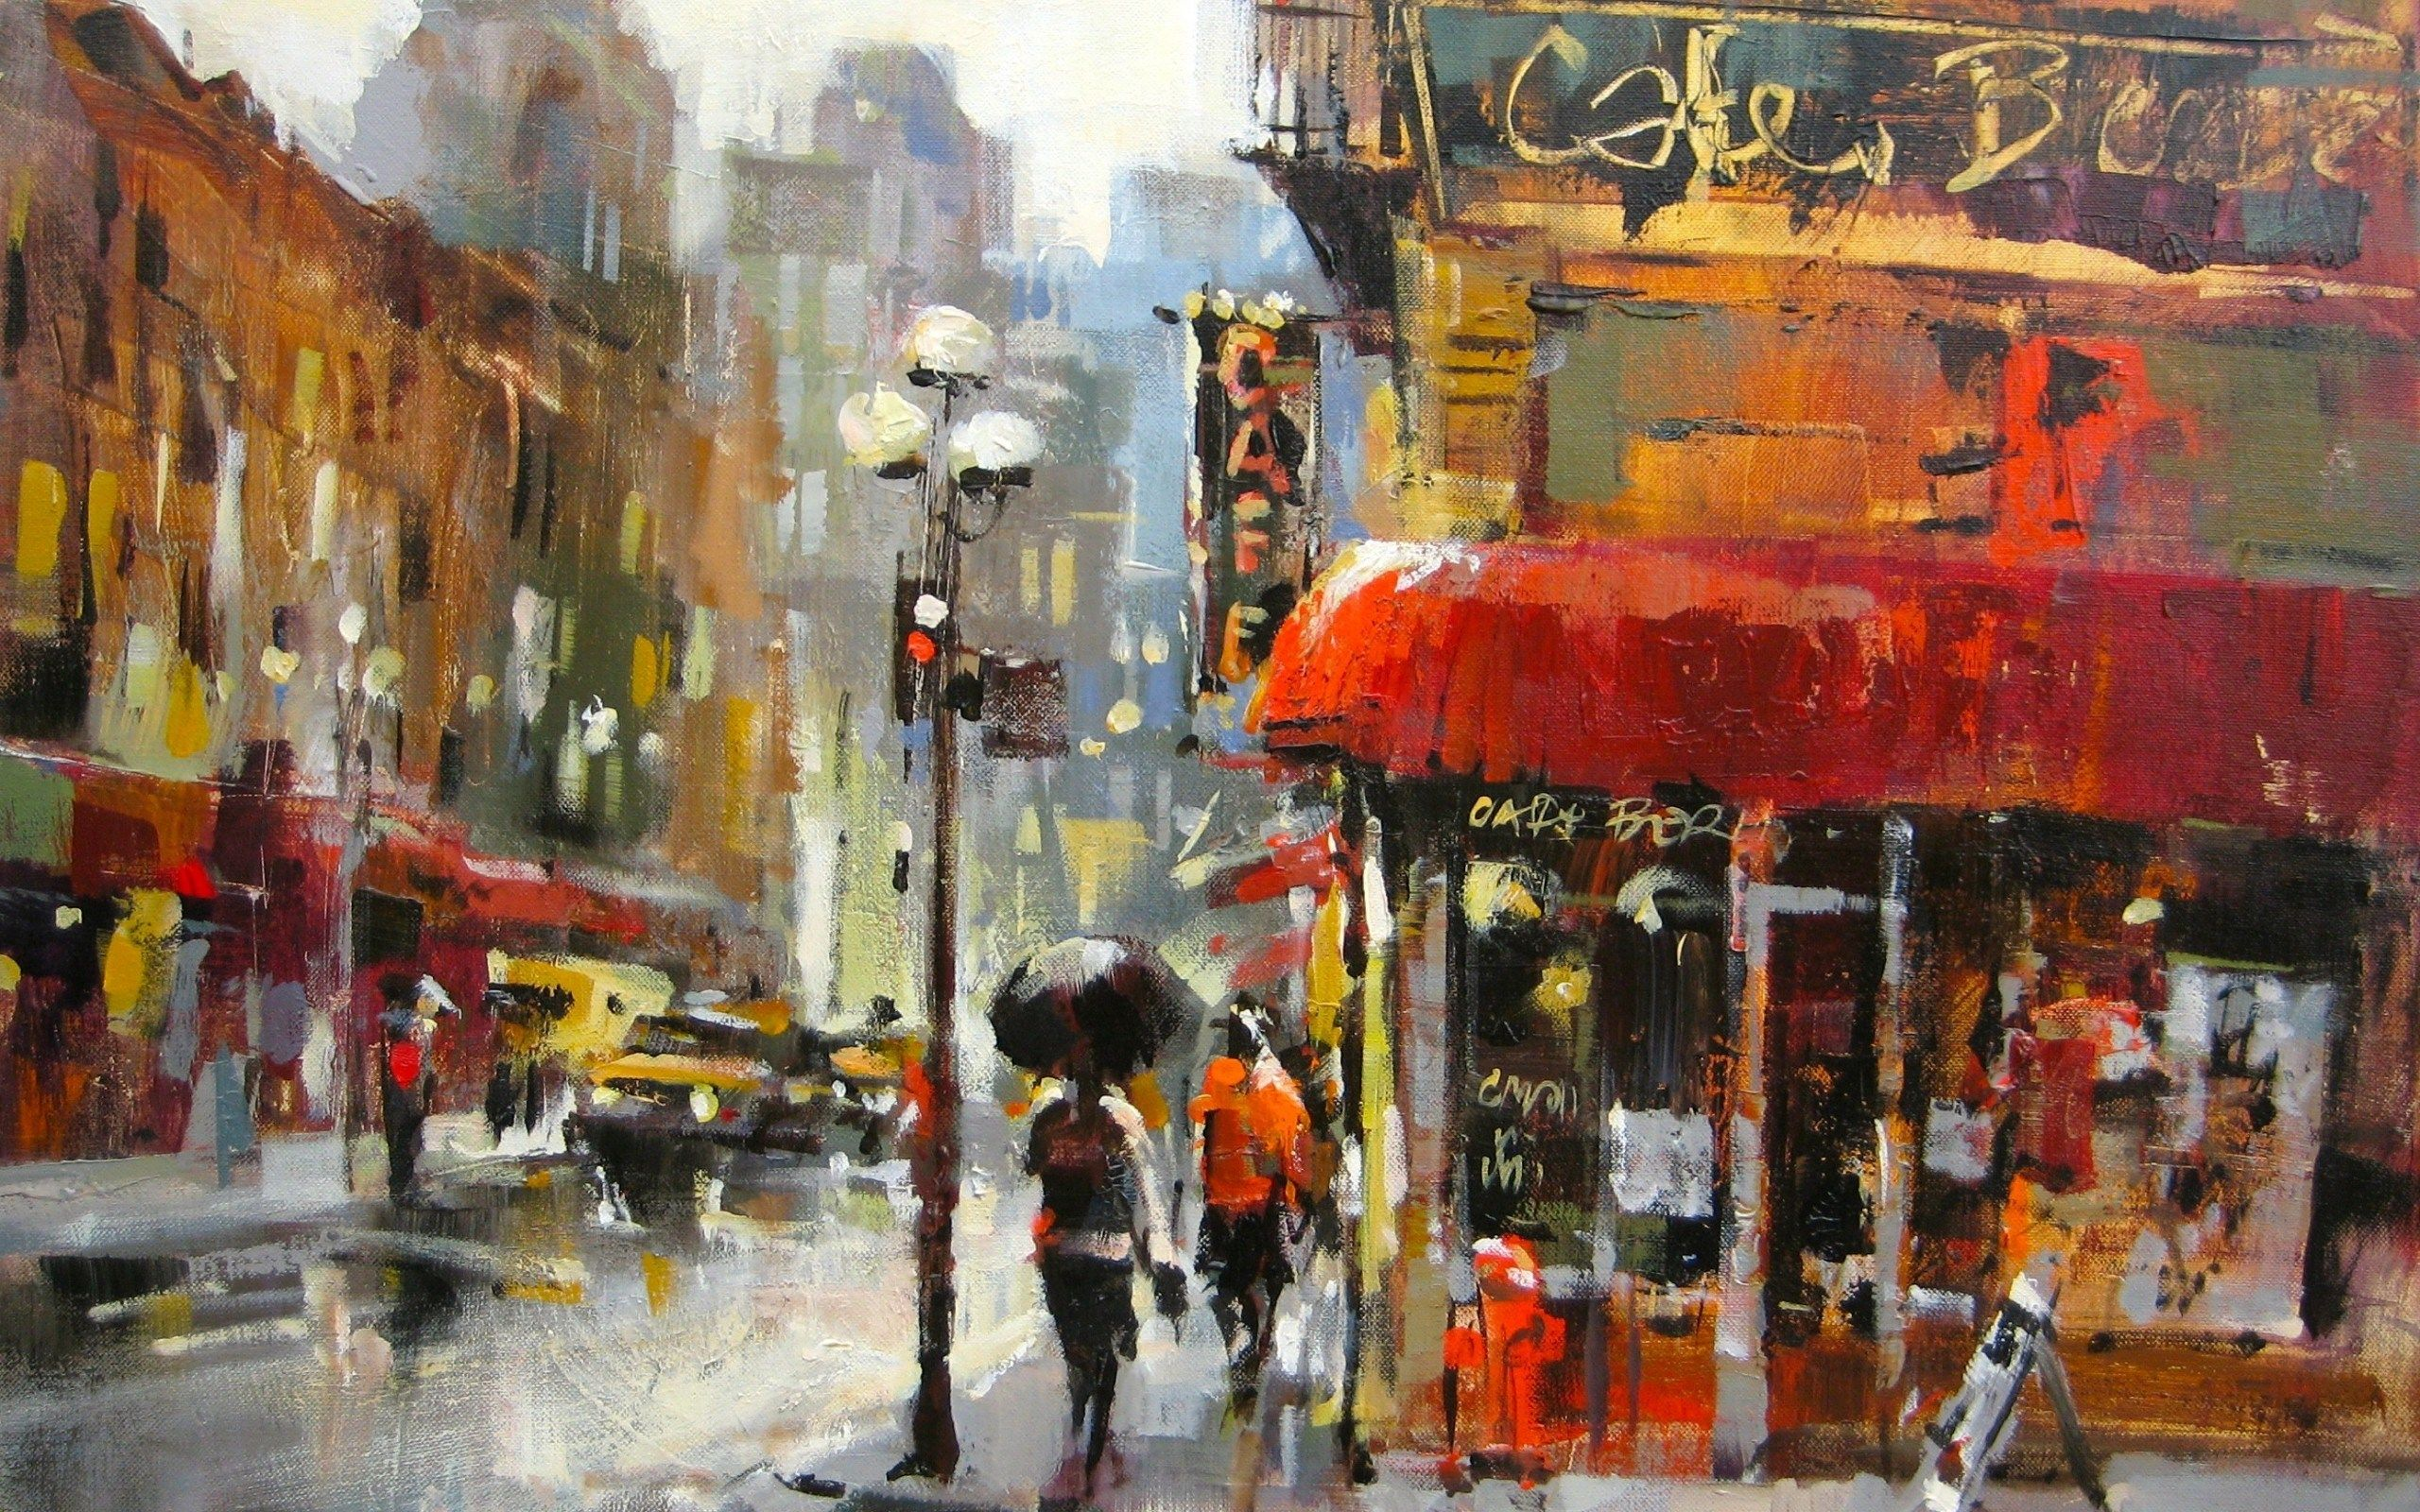 City Street Rainy Day Oil Painting HD Wallpaper | Cool ...